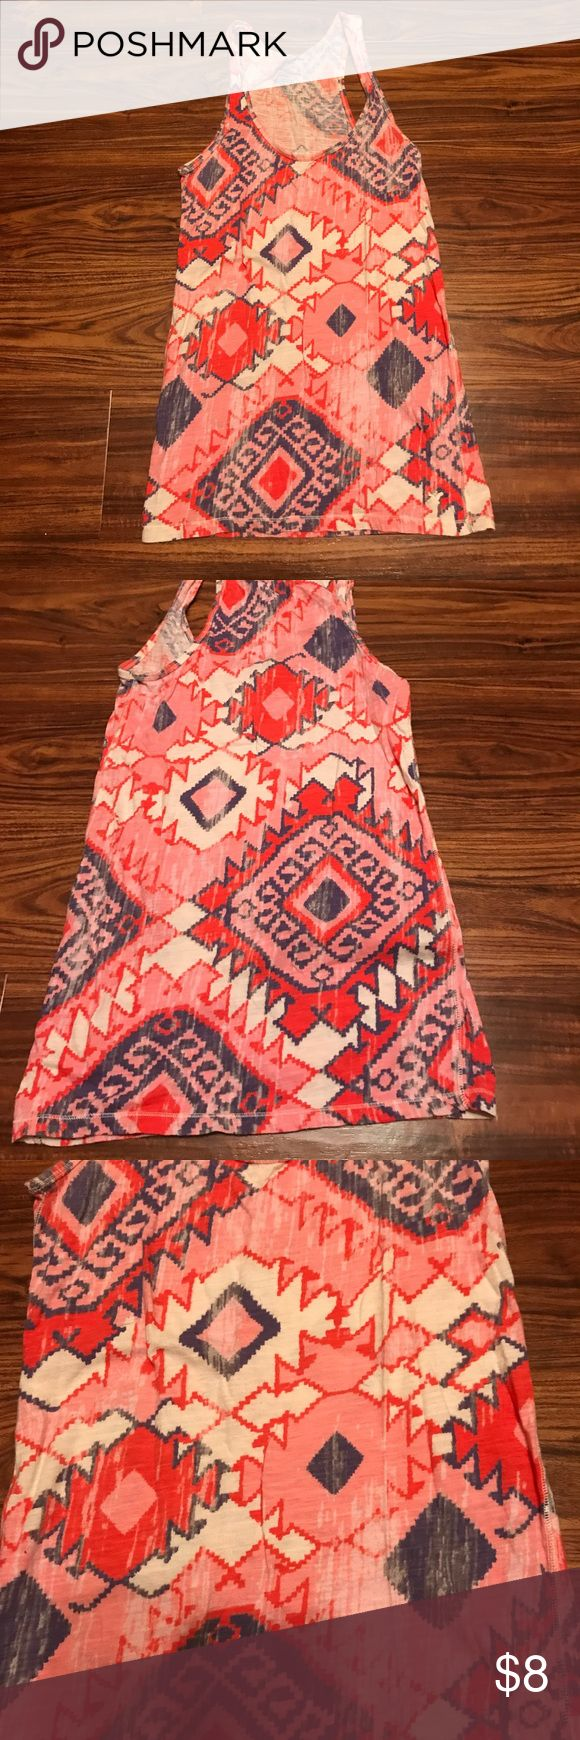 Women's Aztec Print Tank Top Aztec print tank top, 100% cotton. Very bright and comfortable. American Eagle Outfitters Tops Tank Tops